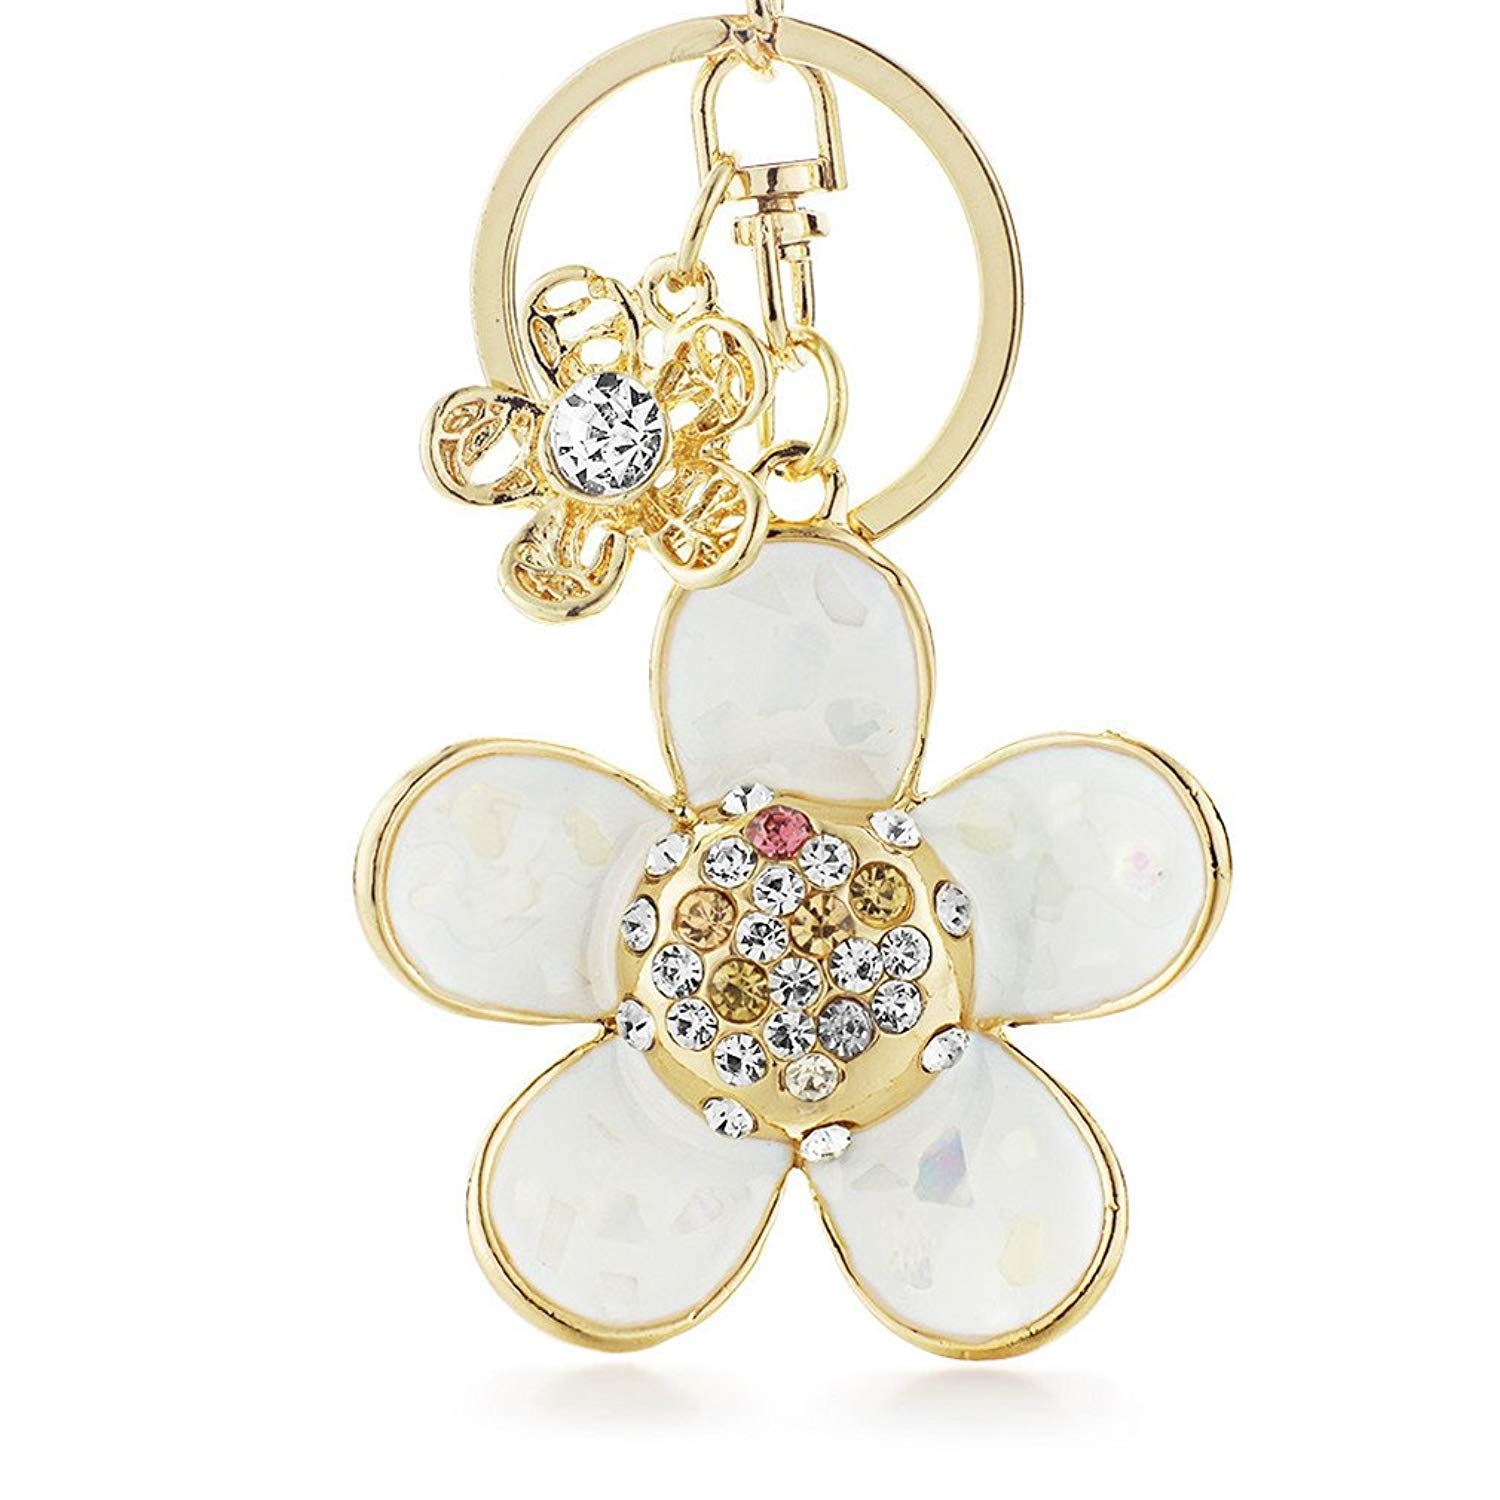 Novelty Shell Petals Double Flower Floral Crystal Rhinestone Keyrings Key Chains Holder Women Keychains